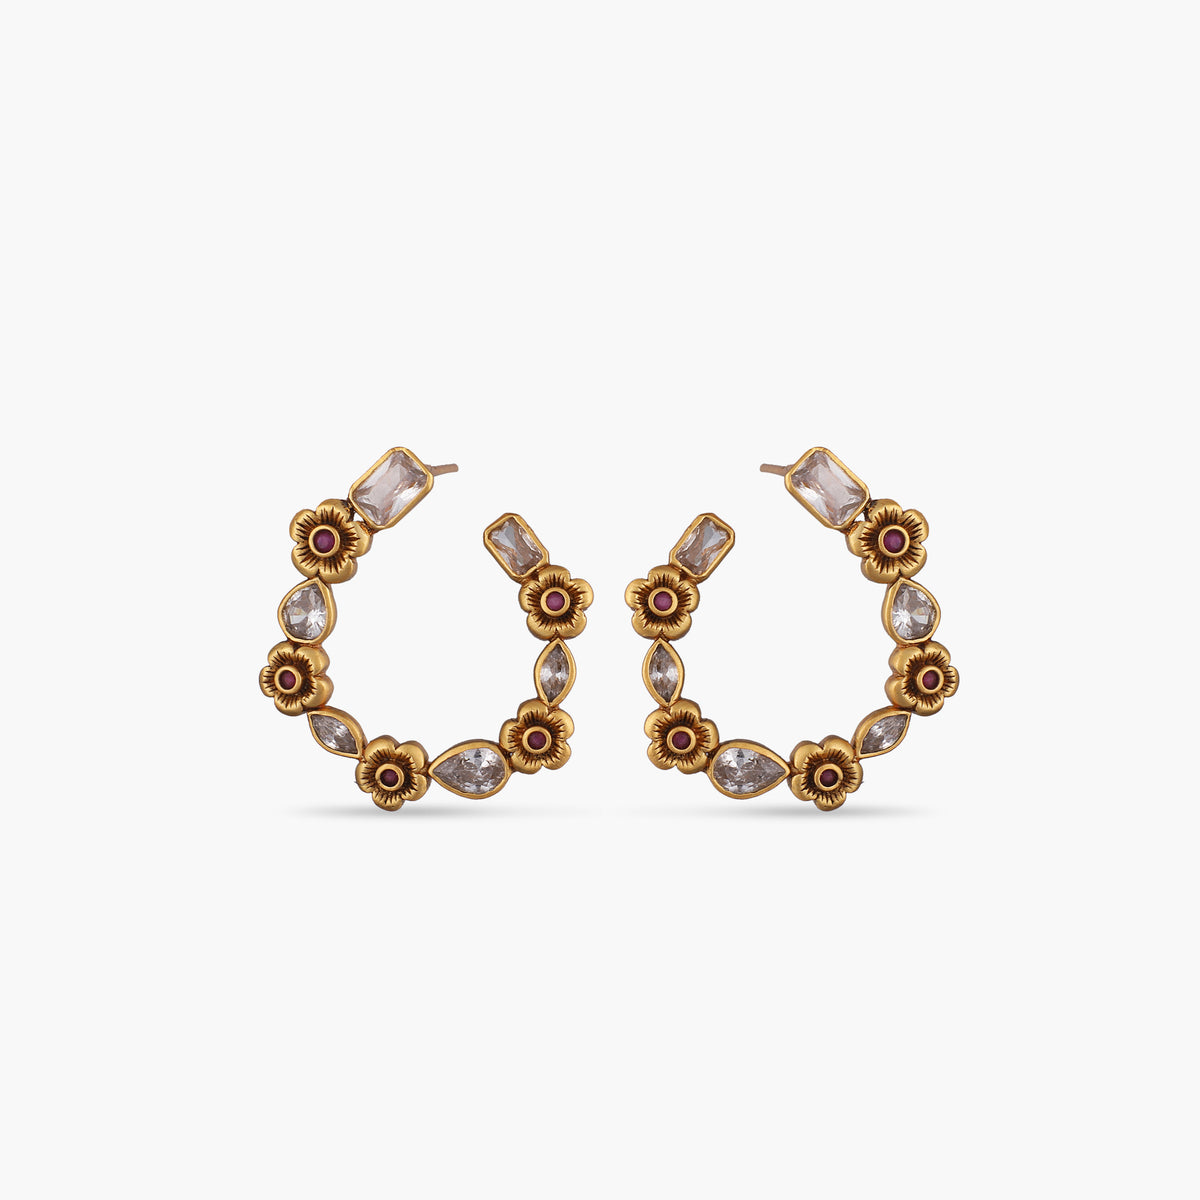 Kavia Antique Hoop Earrings